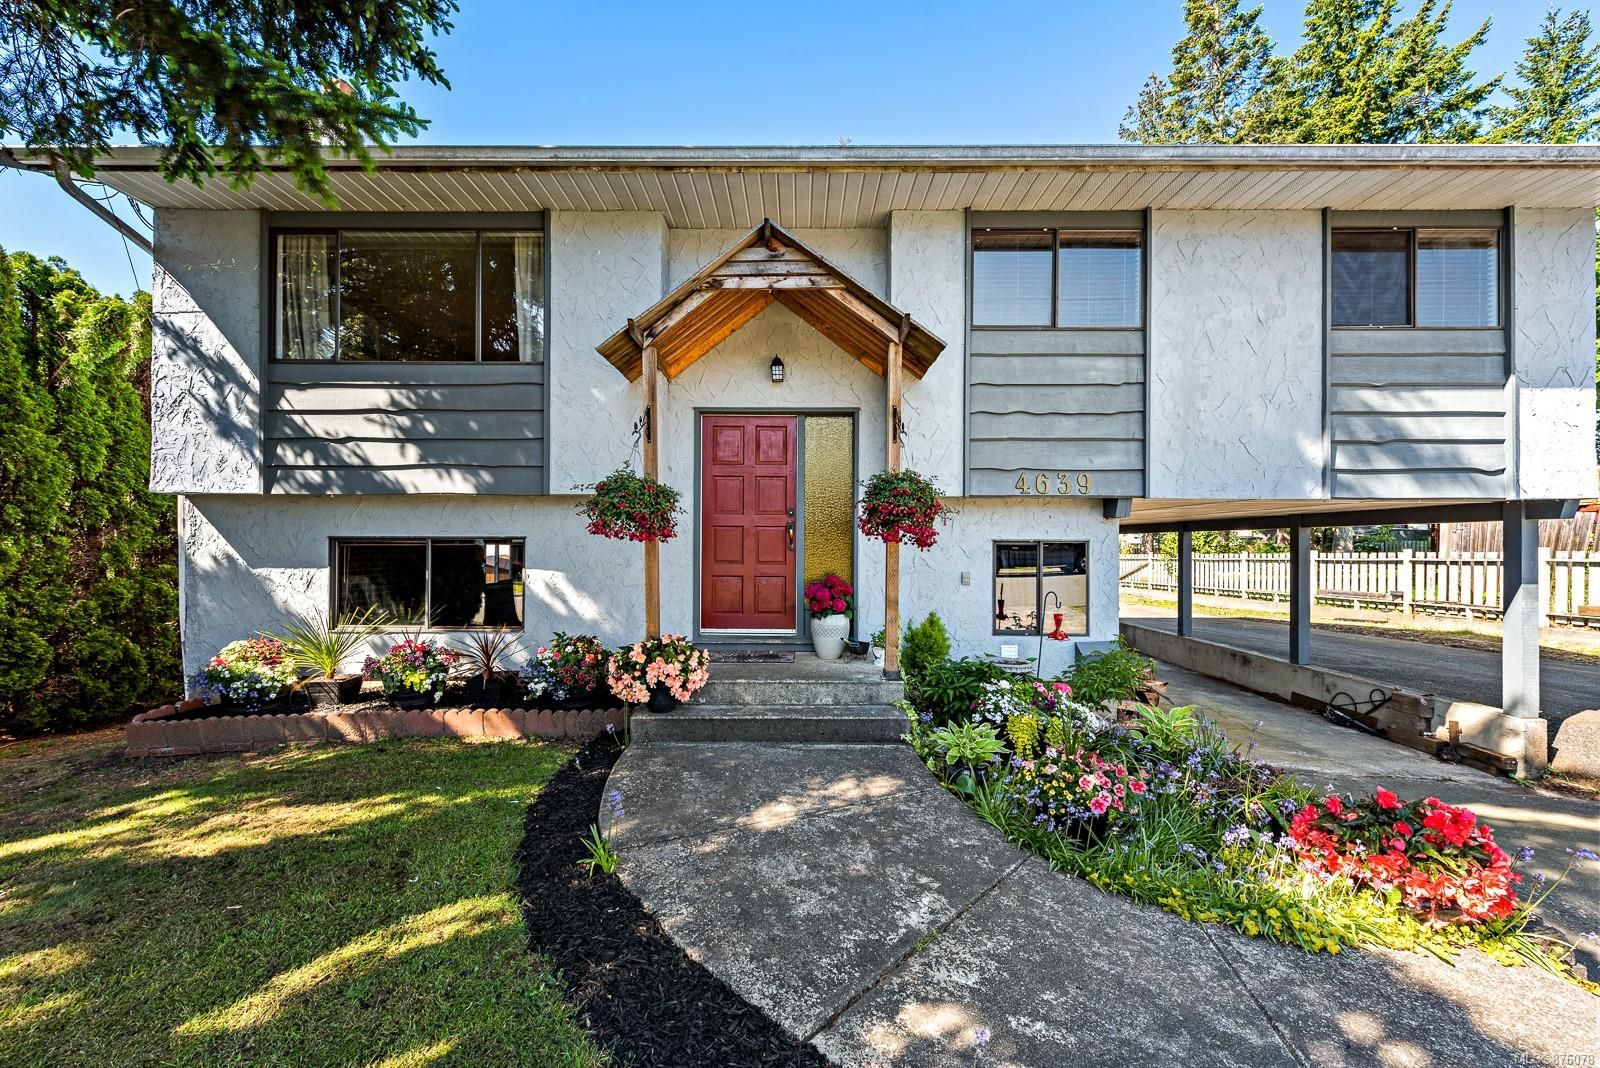 Main Photo: 4639 Macintyre Ave in : CV Courtenay East House for sale (Comox Valley)  : MLS®# 876078